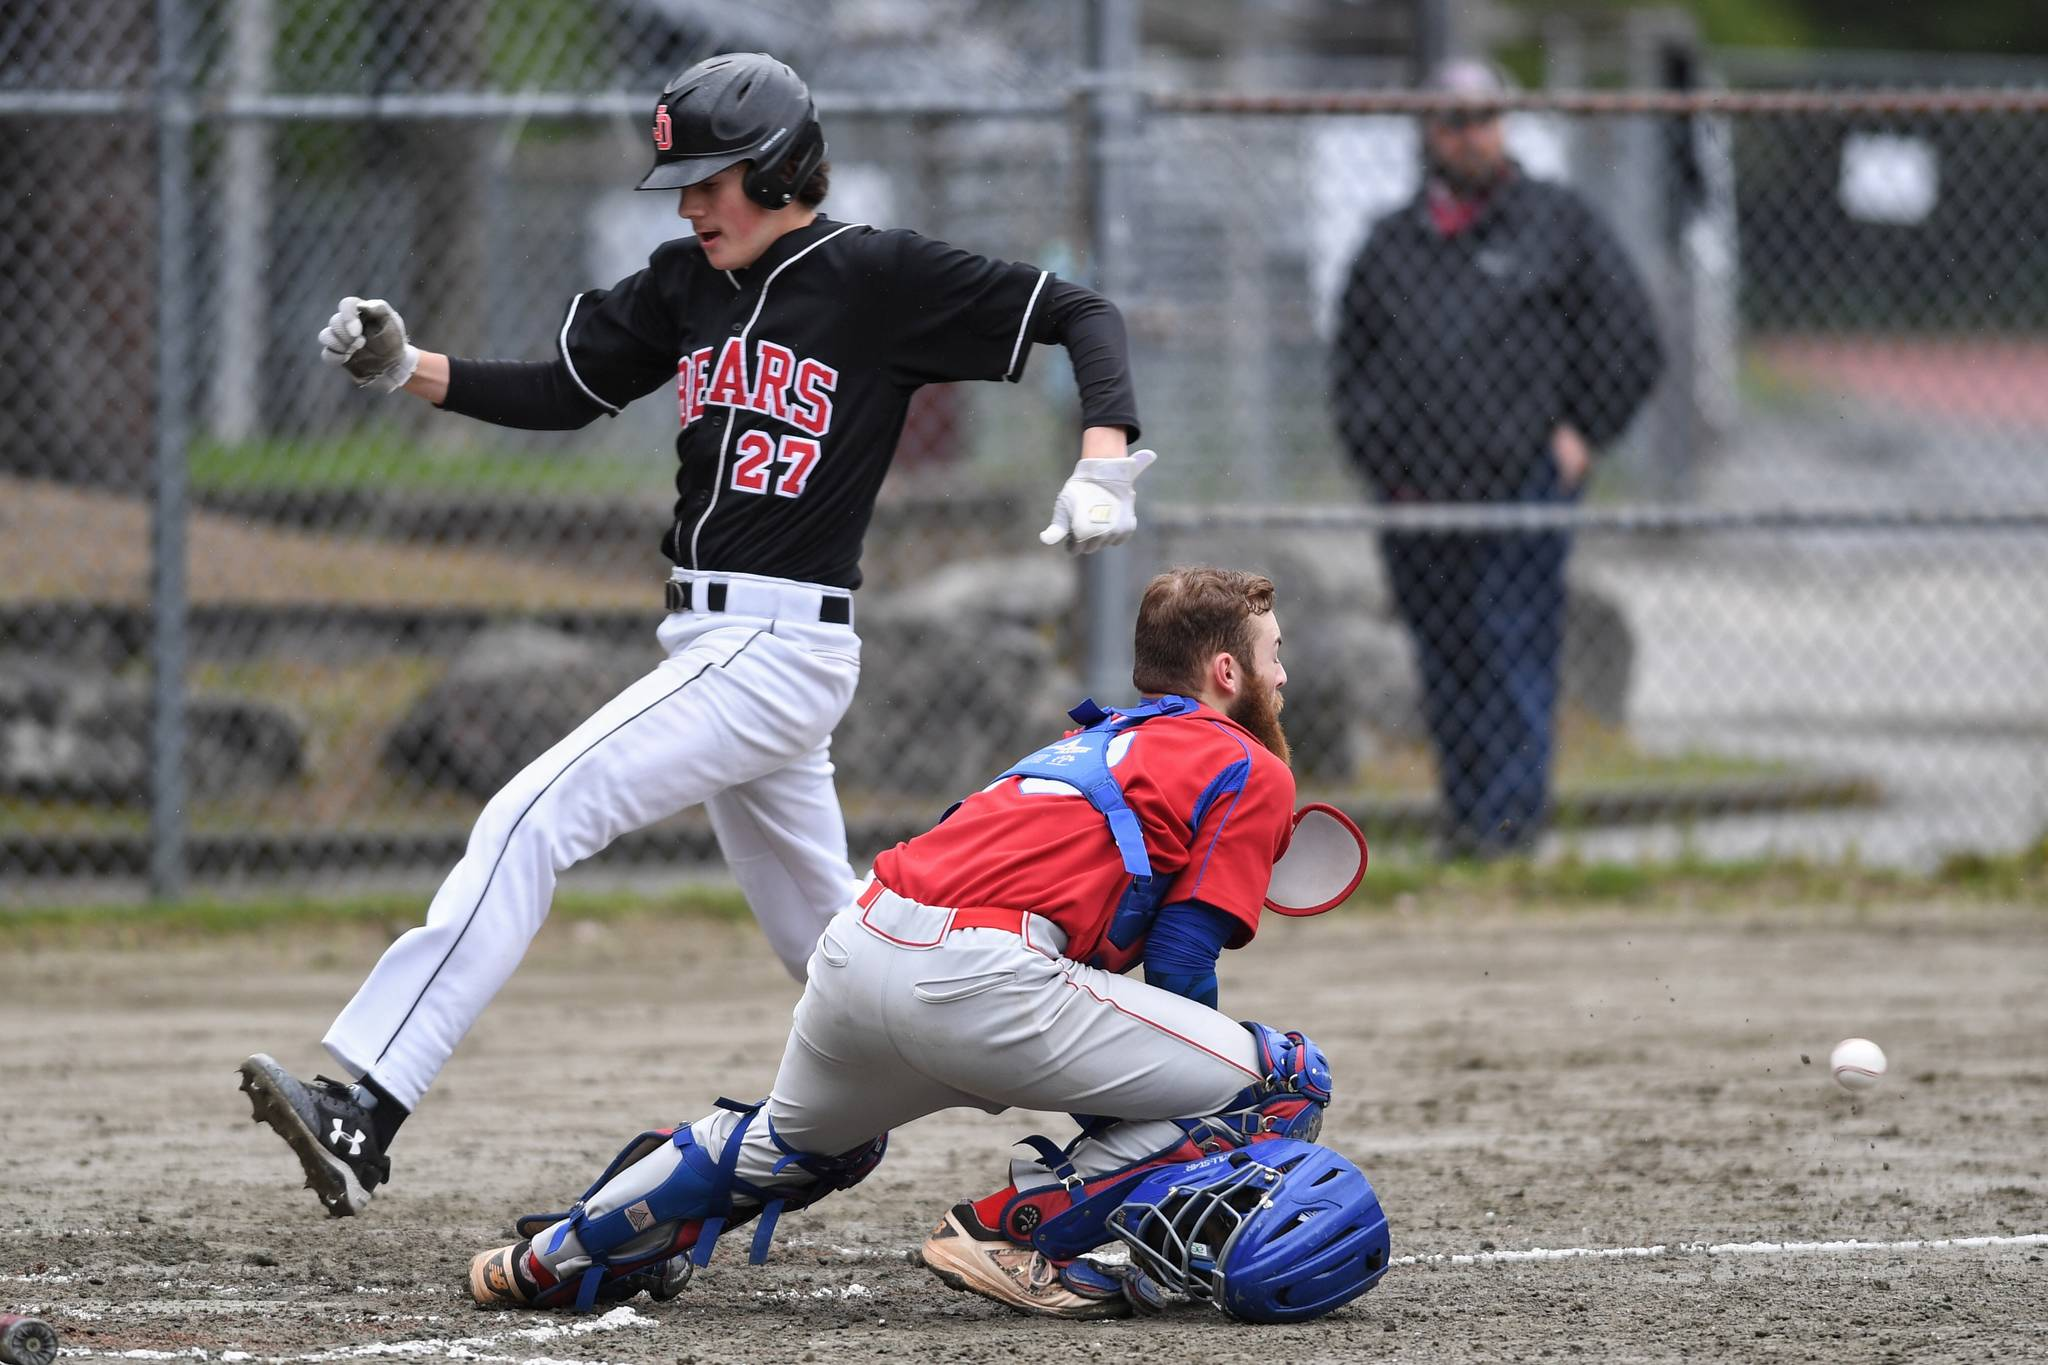 Juneau-Douglas' Garrett Bryant scores in front of the throw to Sitka's catcher Morgan Simic in the fourth inning during the Region V Baseball Championship at Adair-Kennedy Memorial Park on Thursday, May 23, 2019. Bryant and the Crimson Bears will play games in Sitka Friday and Saturday. (Michael Penn / Juneau Empire File)